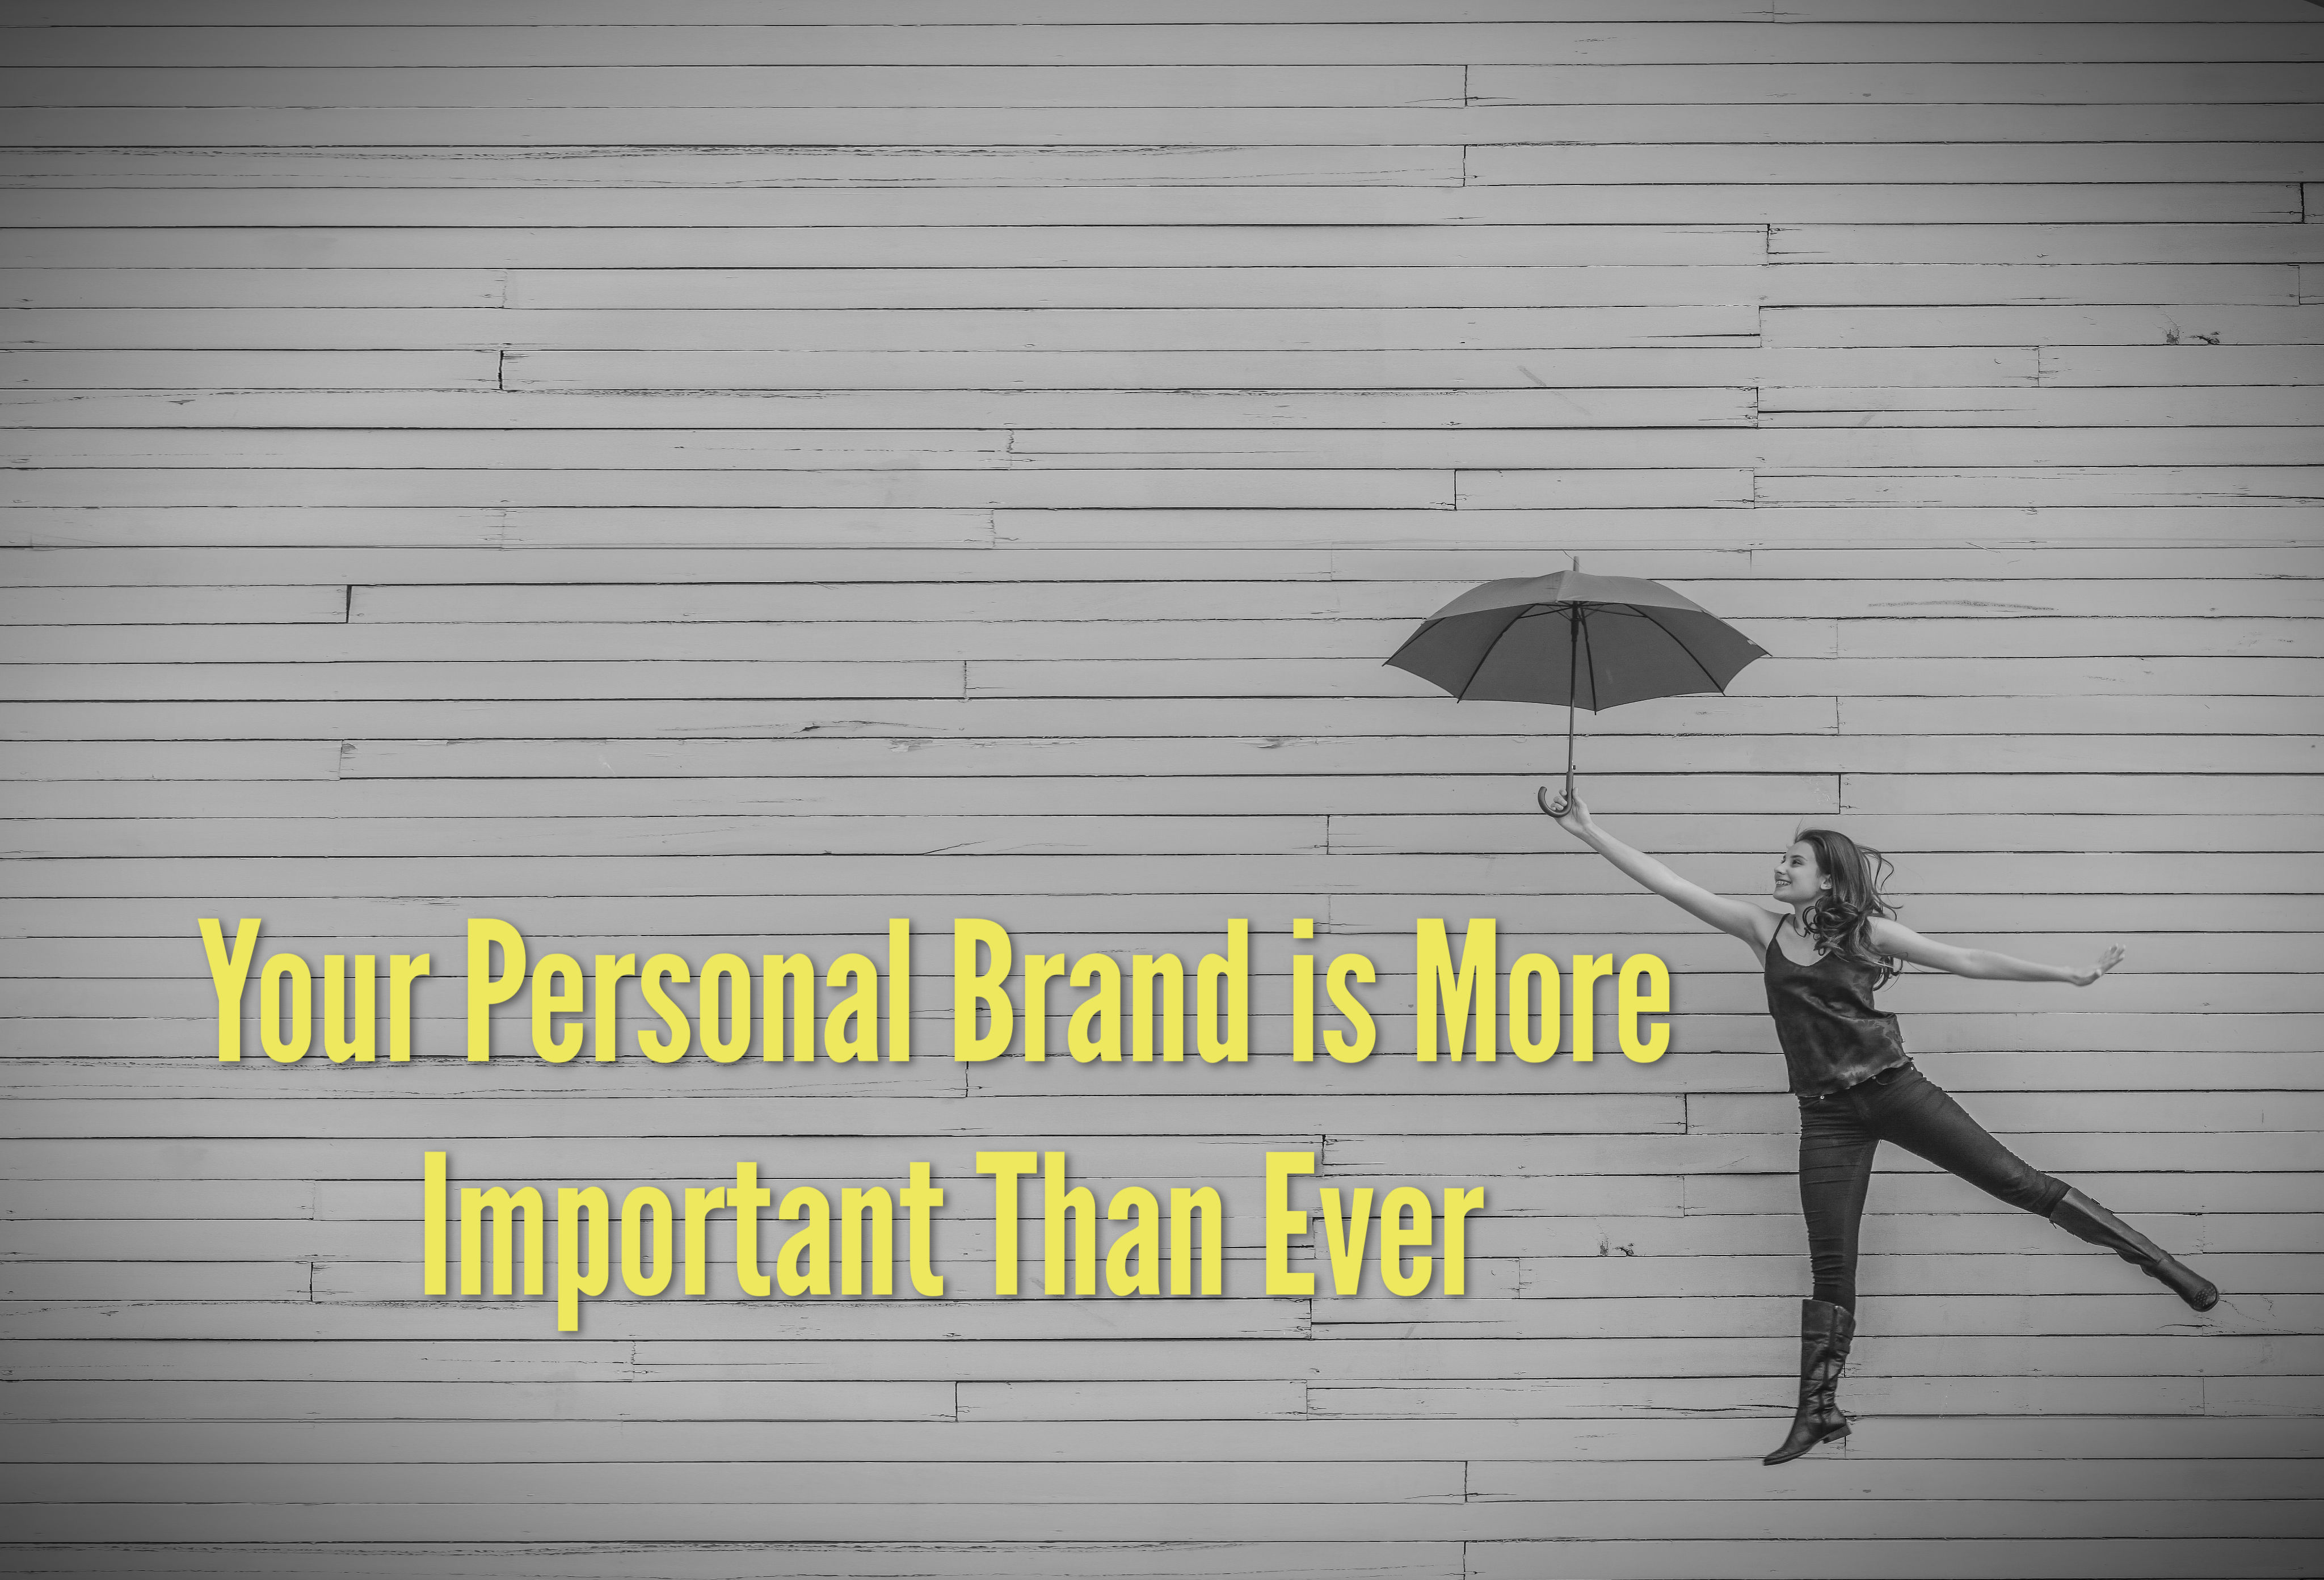 Your Personal Brand is More Important Than Ever